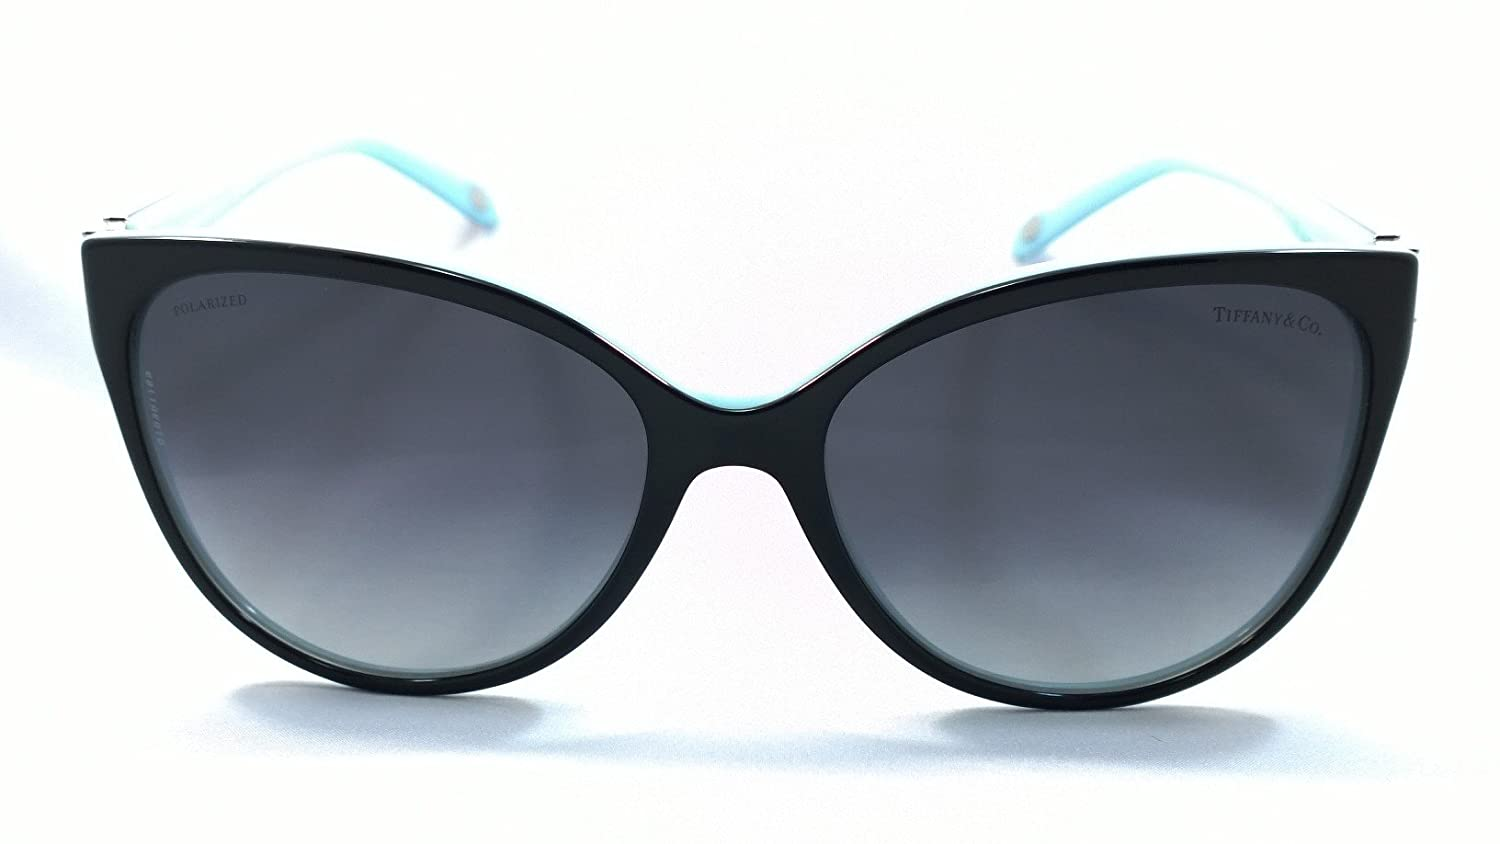 a1e383389641 Amazon.com  Tiffany   Co. Tf4089b 100% Authentic Limited Edition Women s  Polarized Sunglasses Black   Blue 8055 t3  Clothing